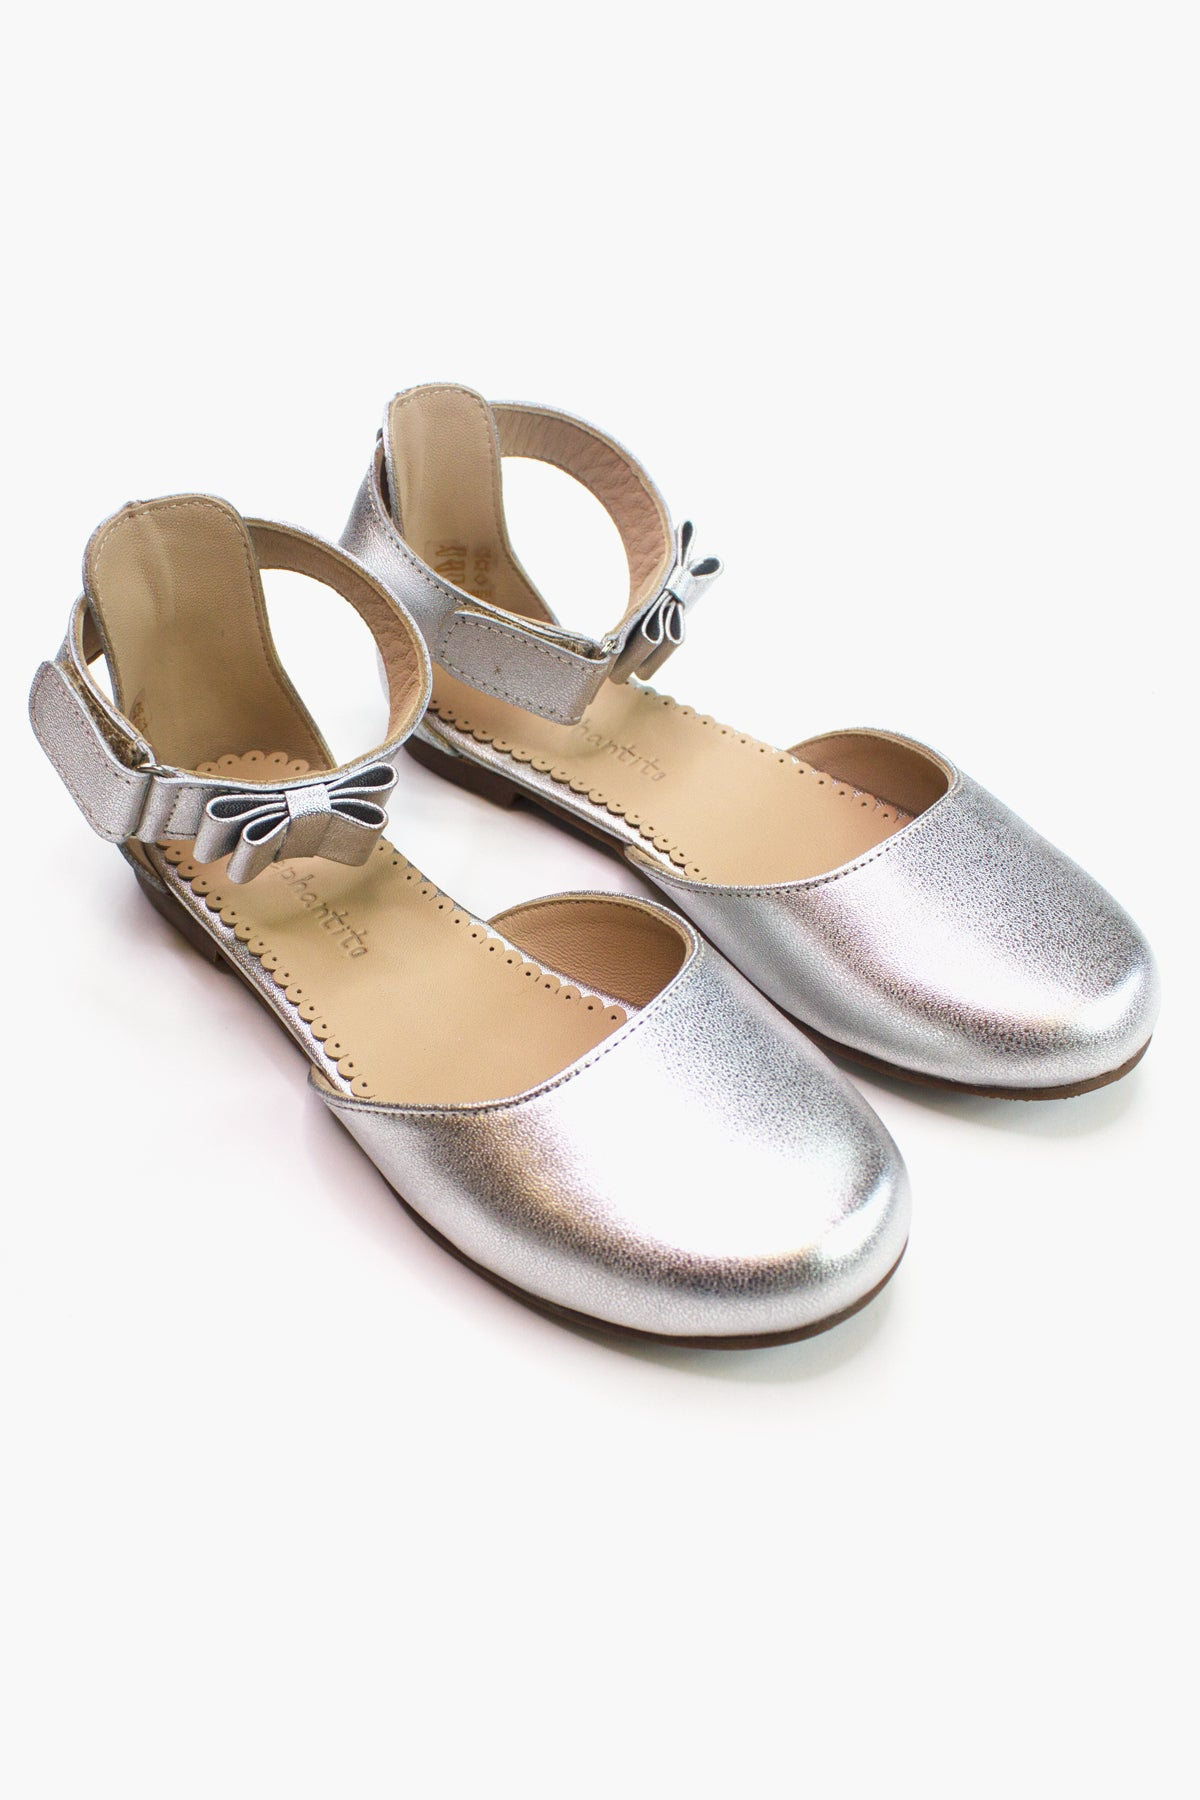 Elephantito April Flat Girls Shoes - Silver